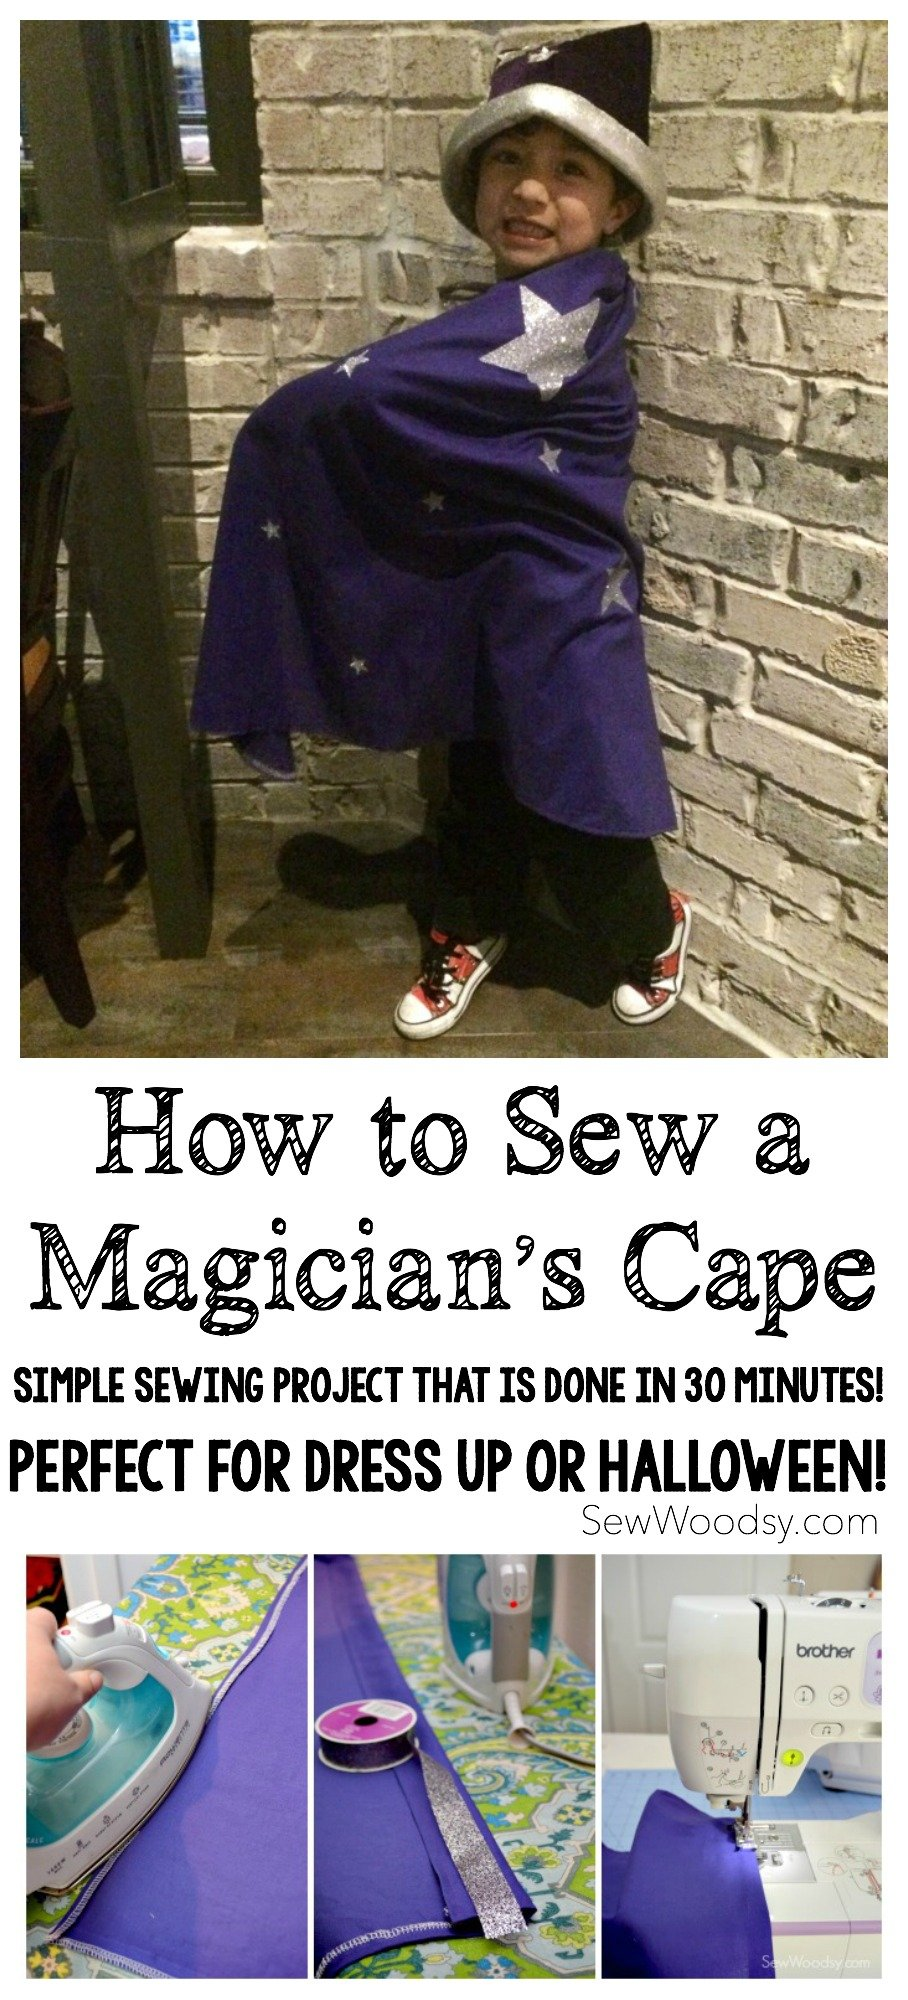 How to Sew a Magician's Cape